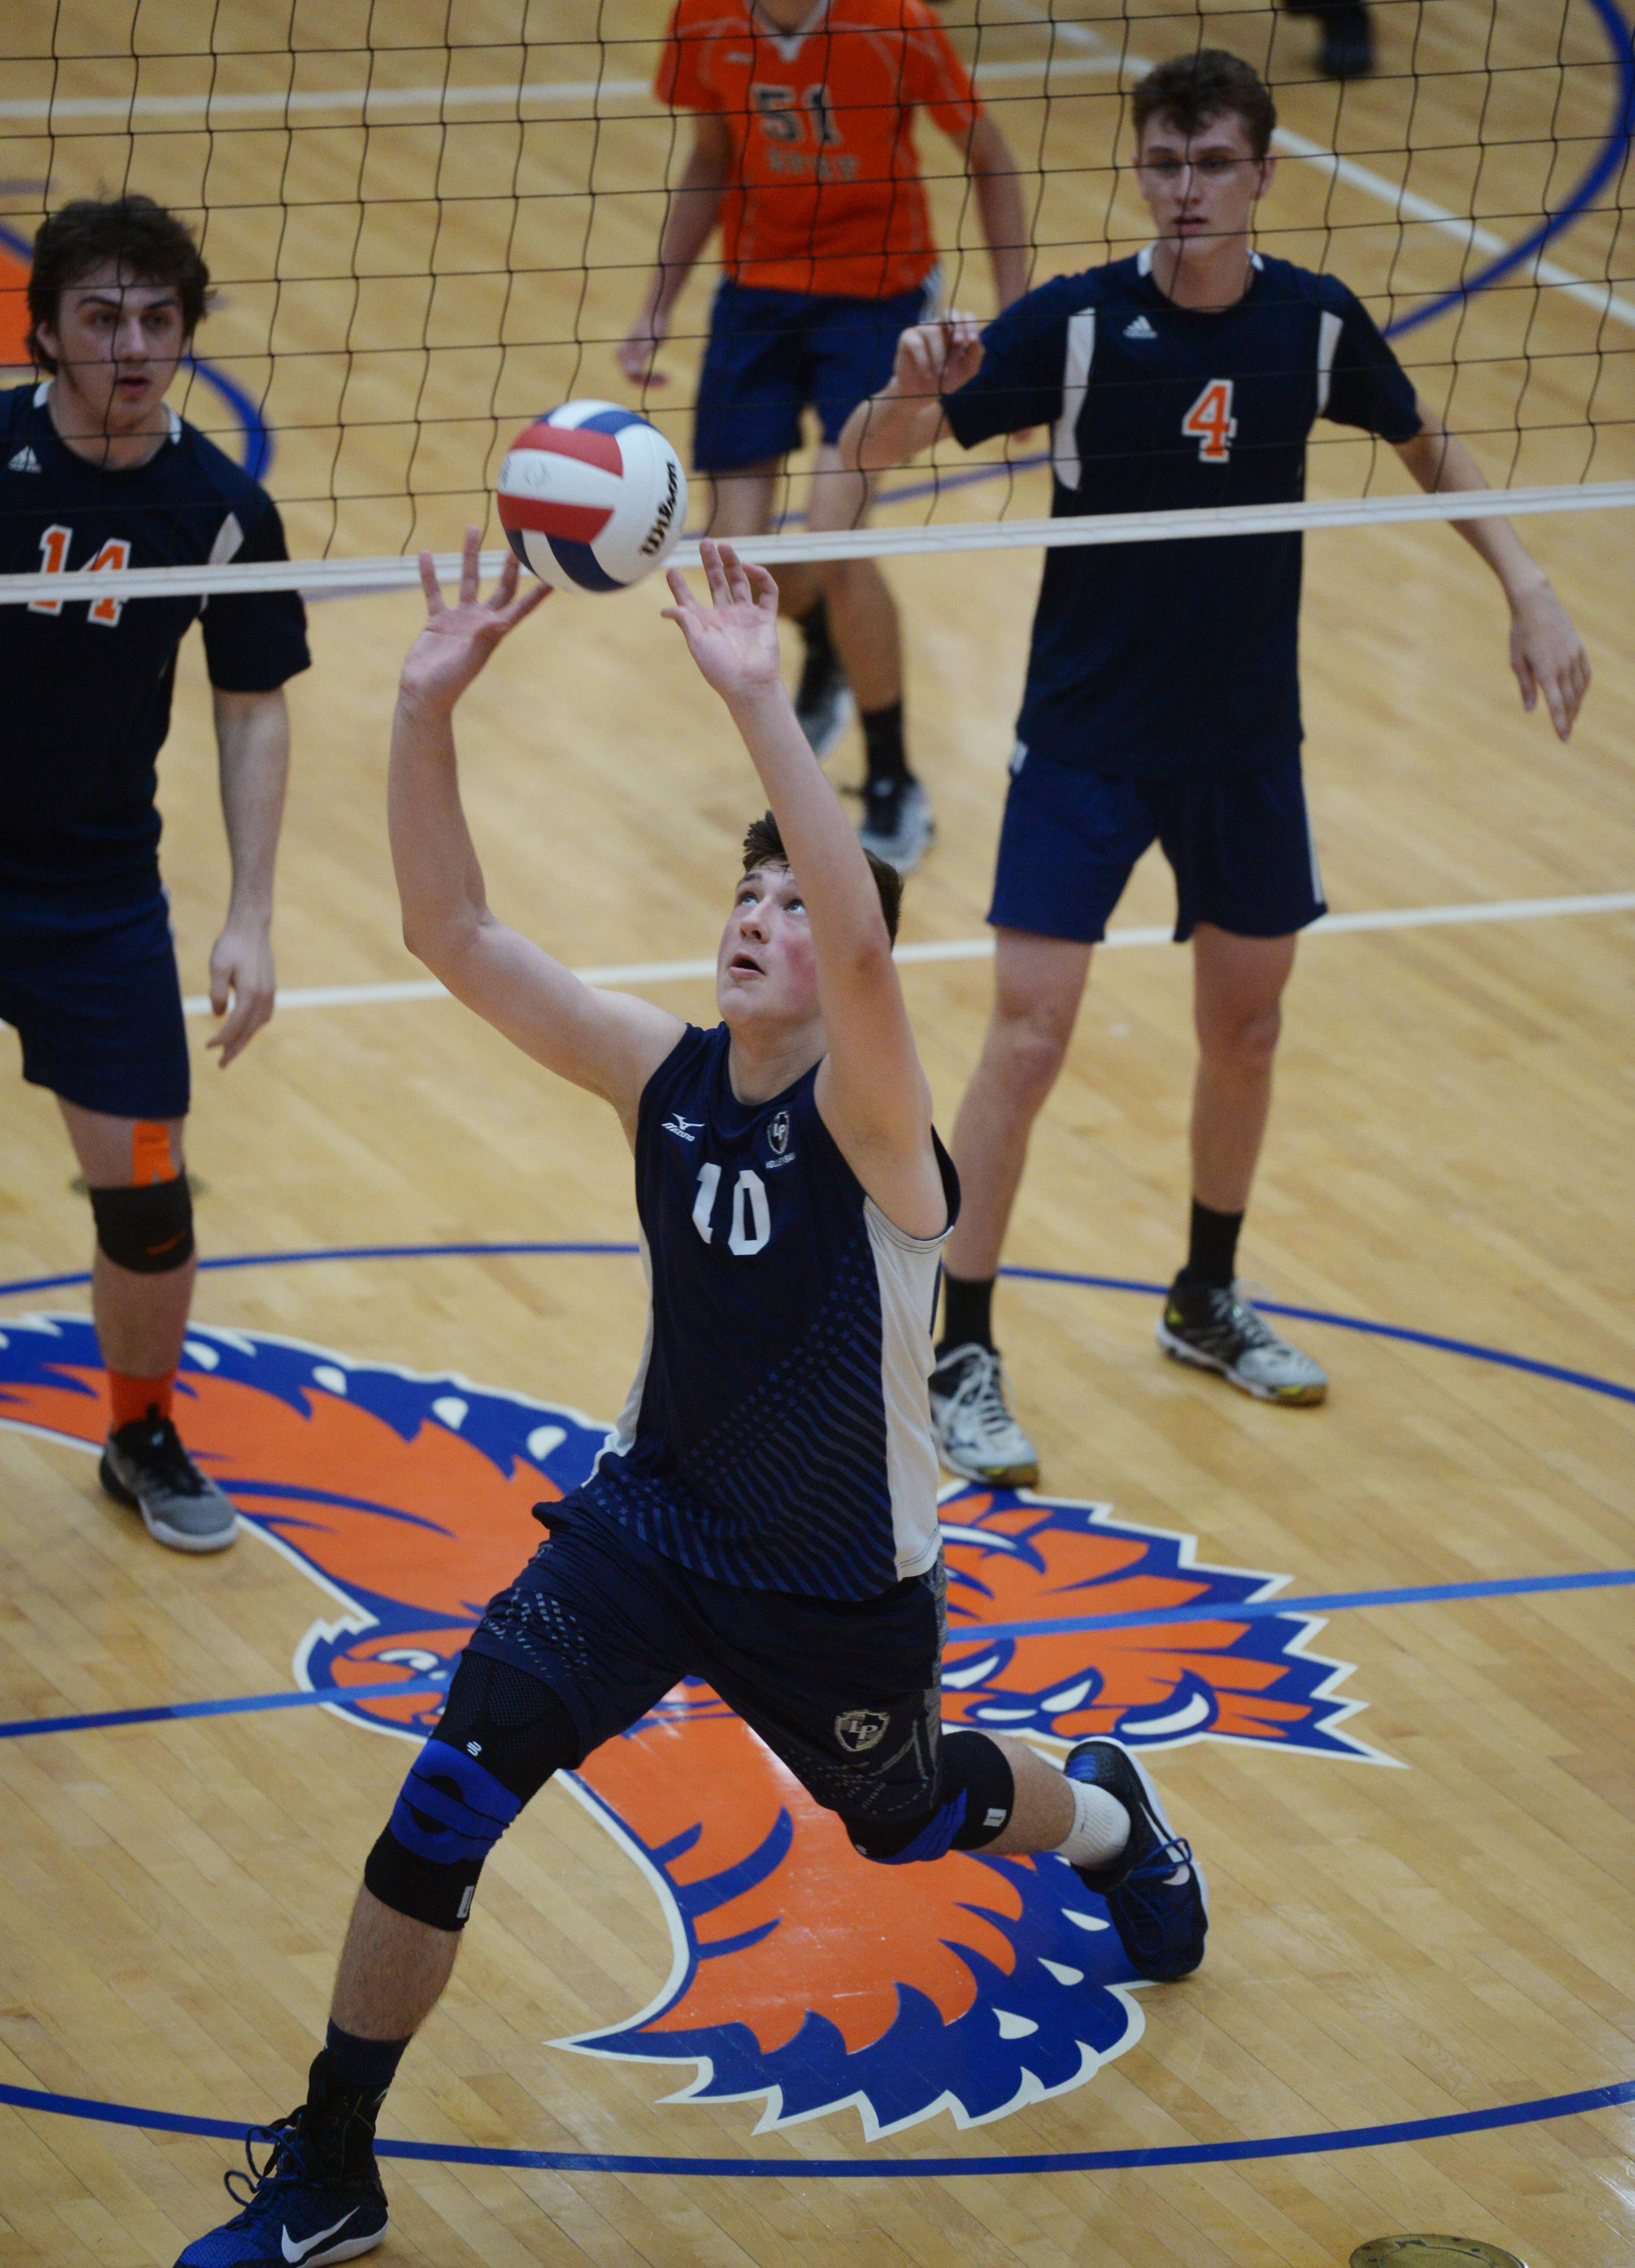 Lake Park's Justin Yost hustles to keep the ball in play during the boys volleyball state quarterfinals match against Oak Park-River Forest at Hoffman Estates High School Friday.